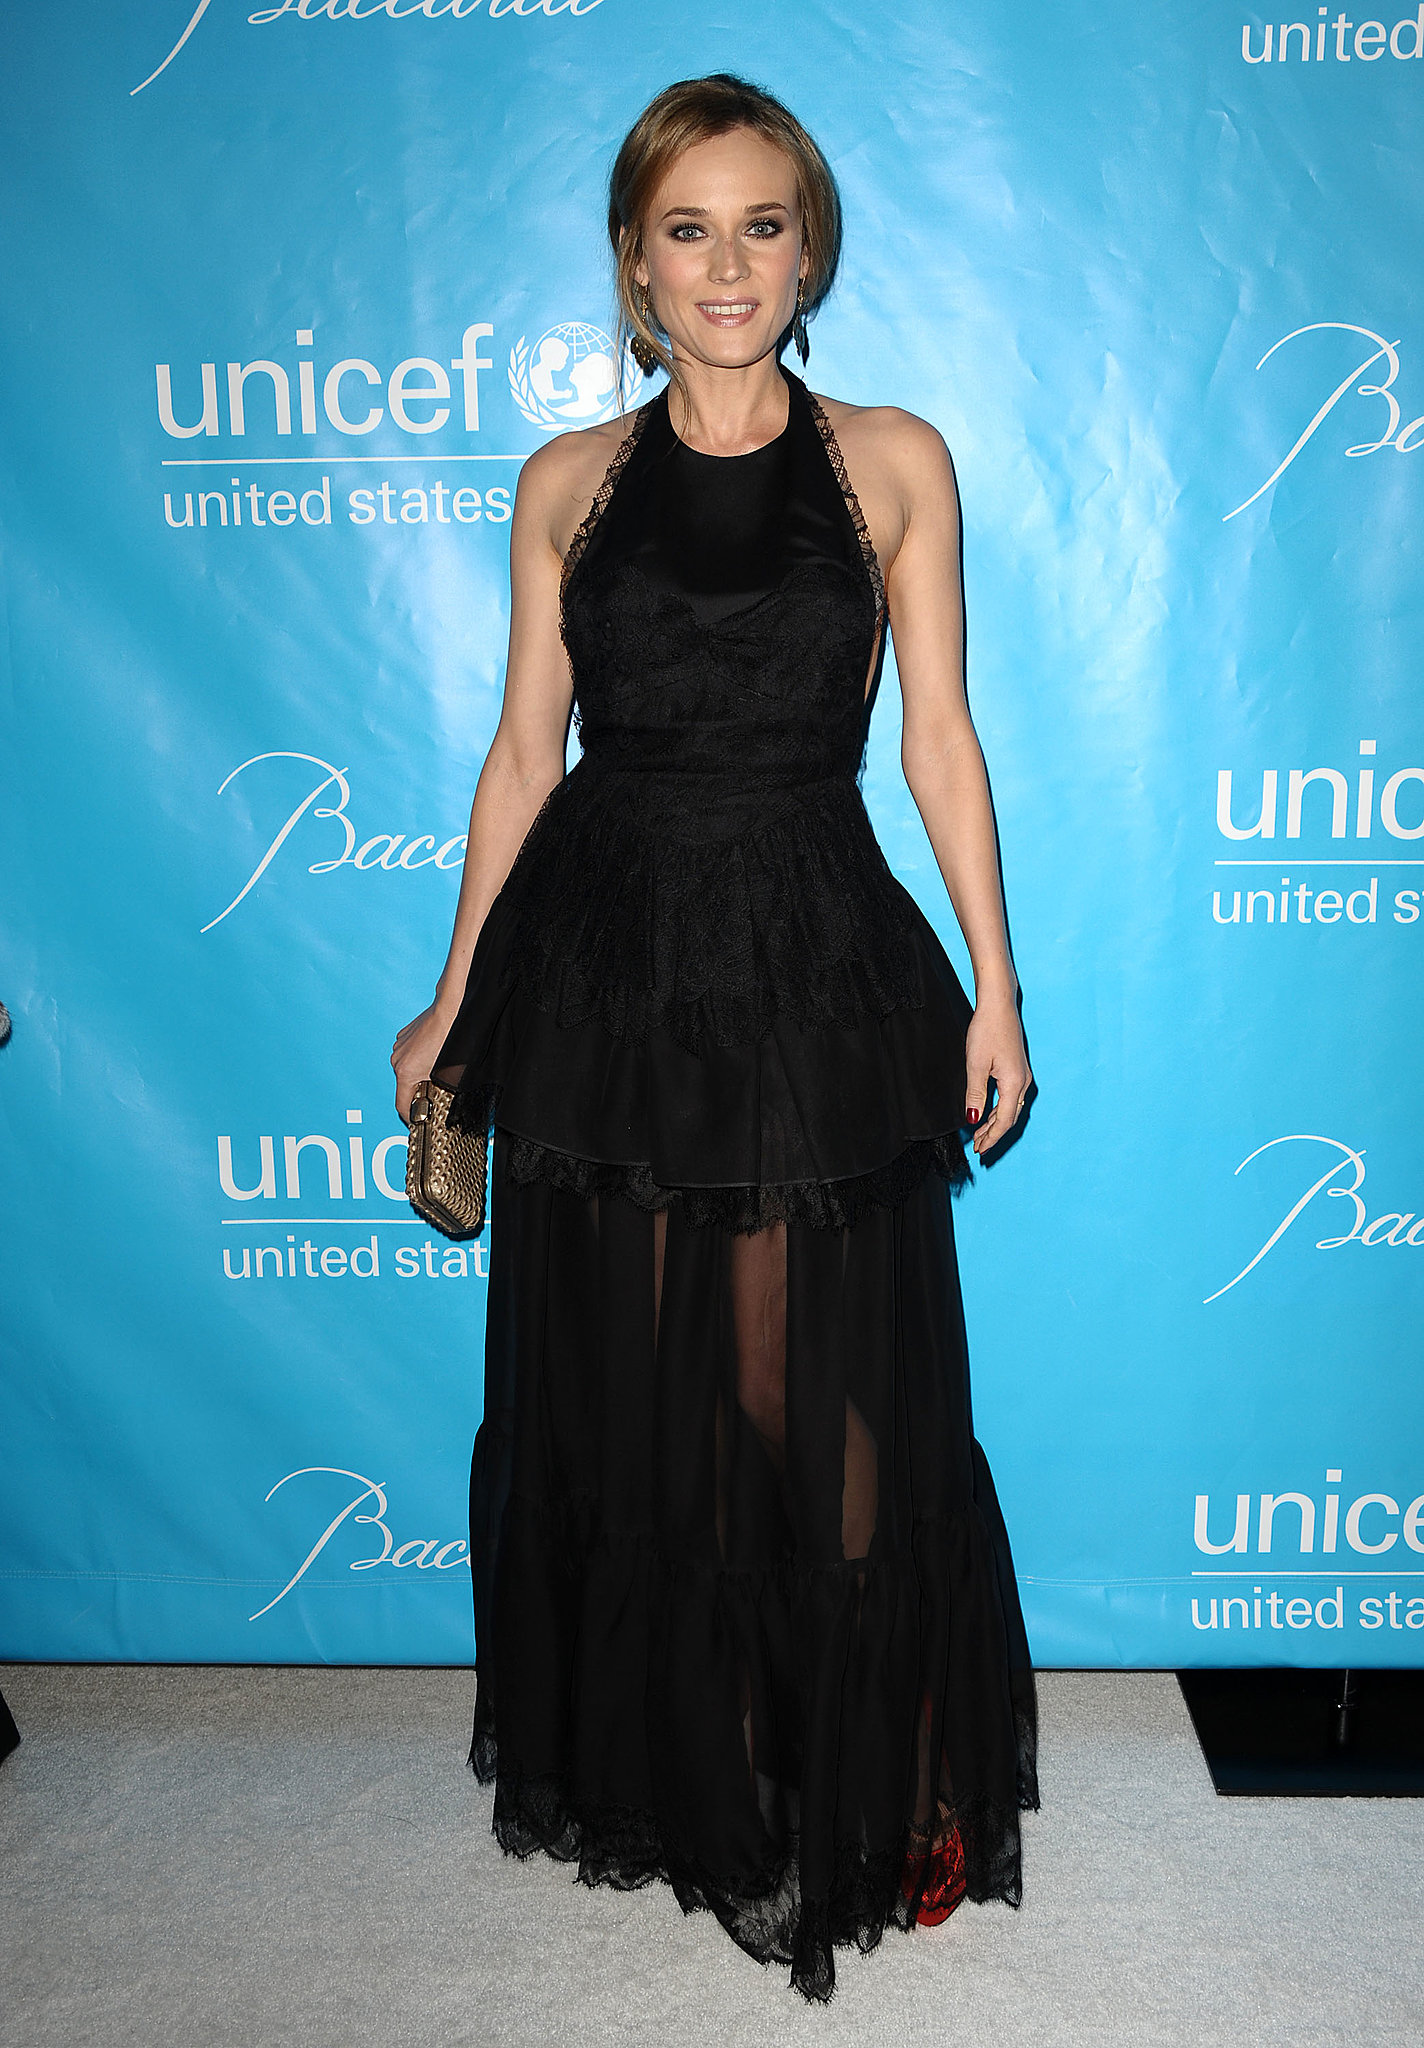 She wore a skin-baring gown by Emilio Pucci to the 2011 UNICEF Ball.